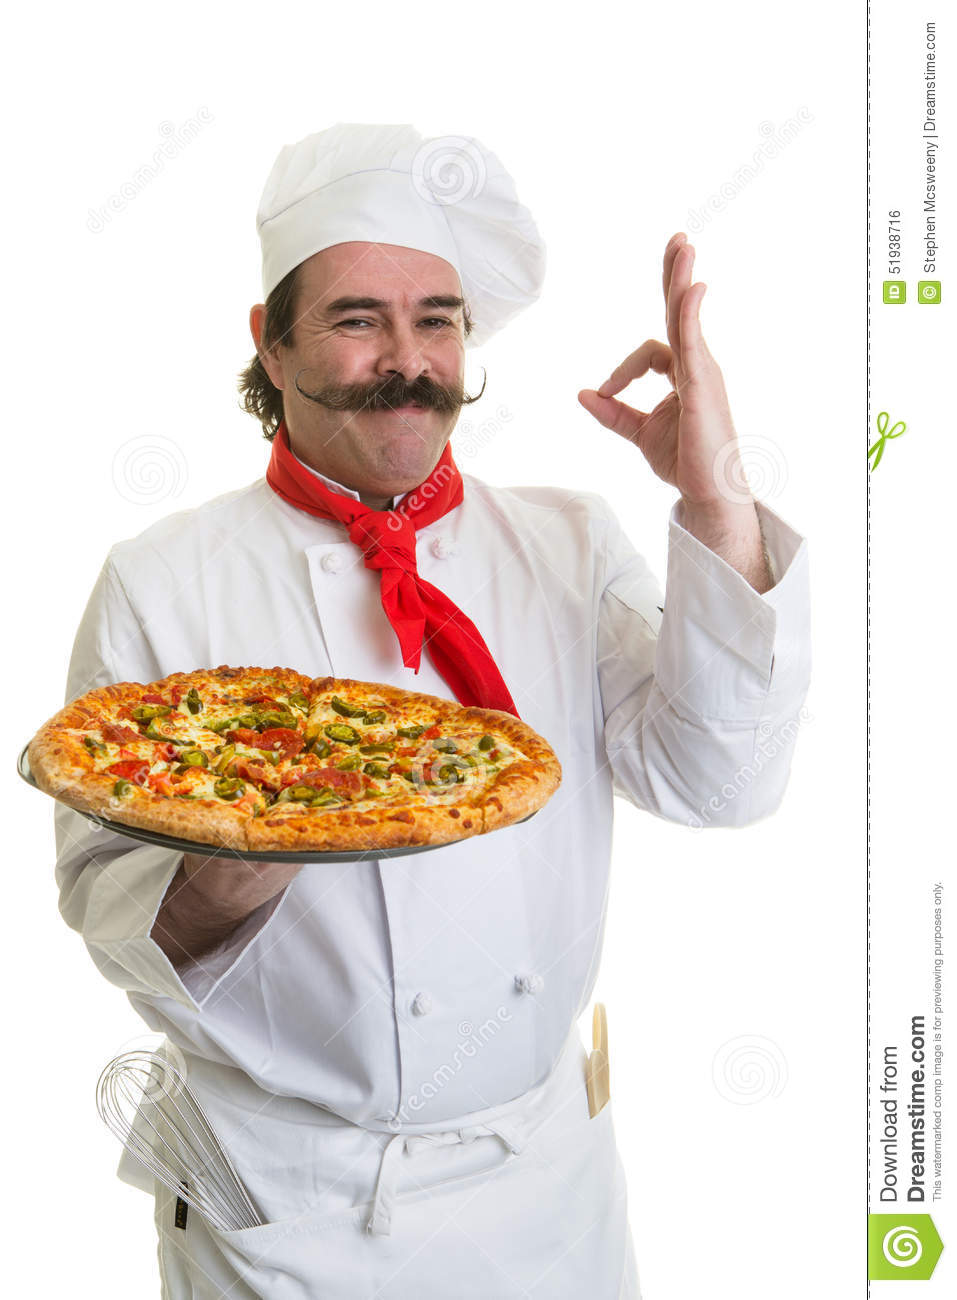 Italian Chef Stock Photo - Image: 51938716